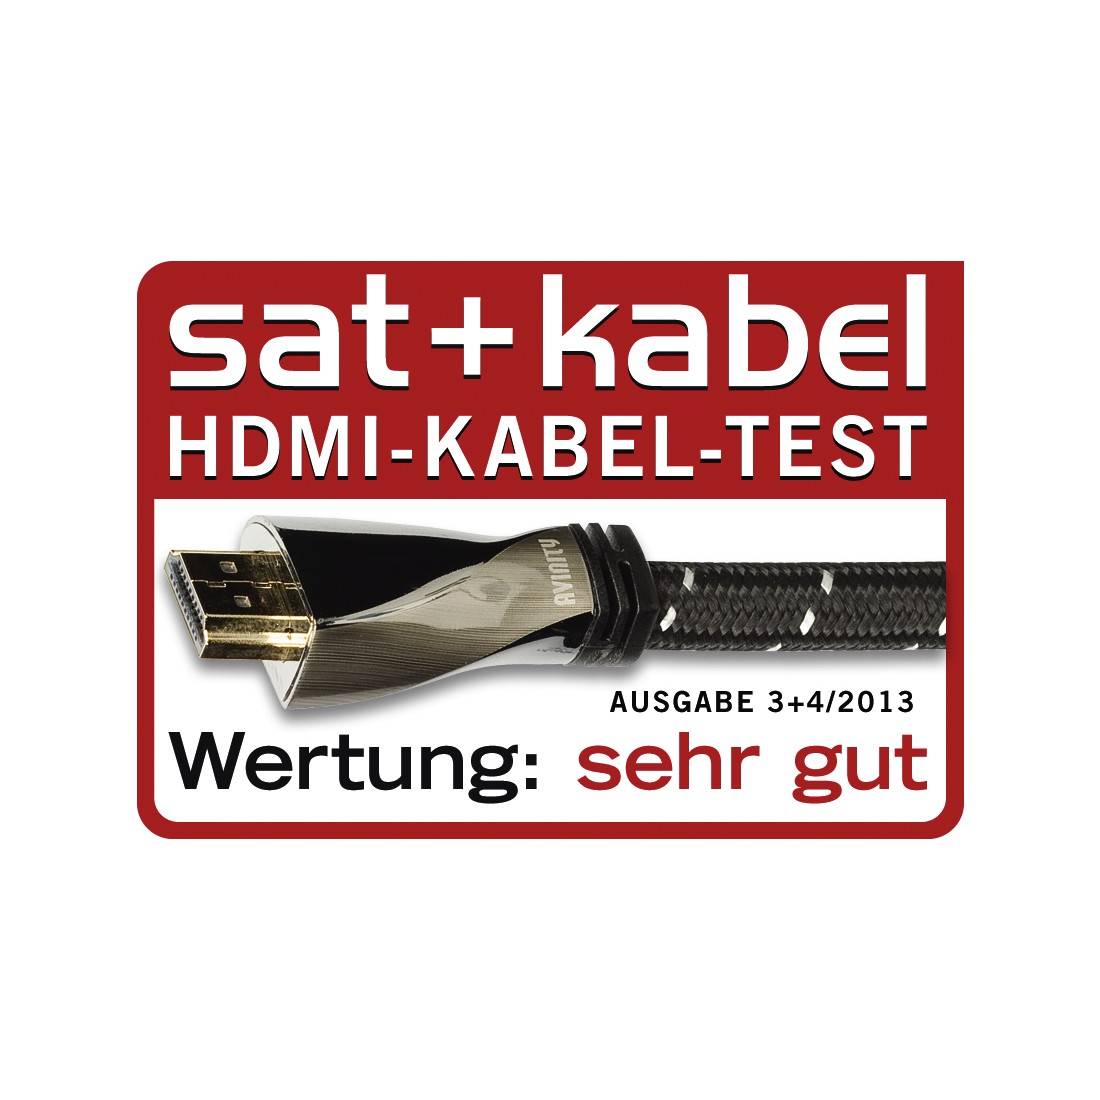 tex2 Druckfähiges Testurteil 2 - Avinity, High Speed HDMI™-Kabel, St. - St., Gewebe, Filter, vergoldet, Ethernet, 1 m